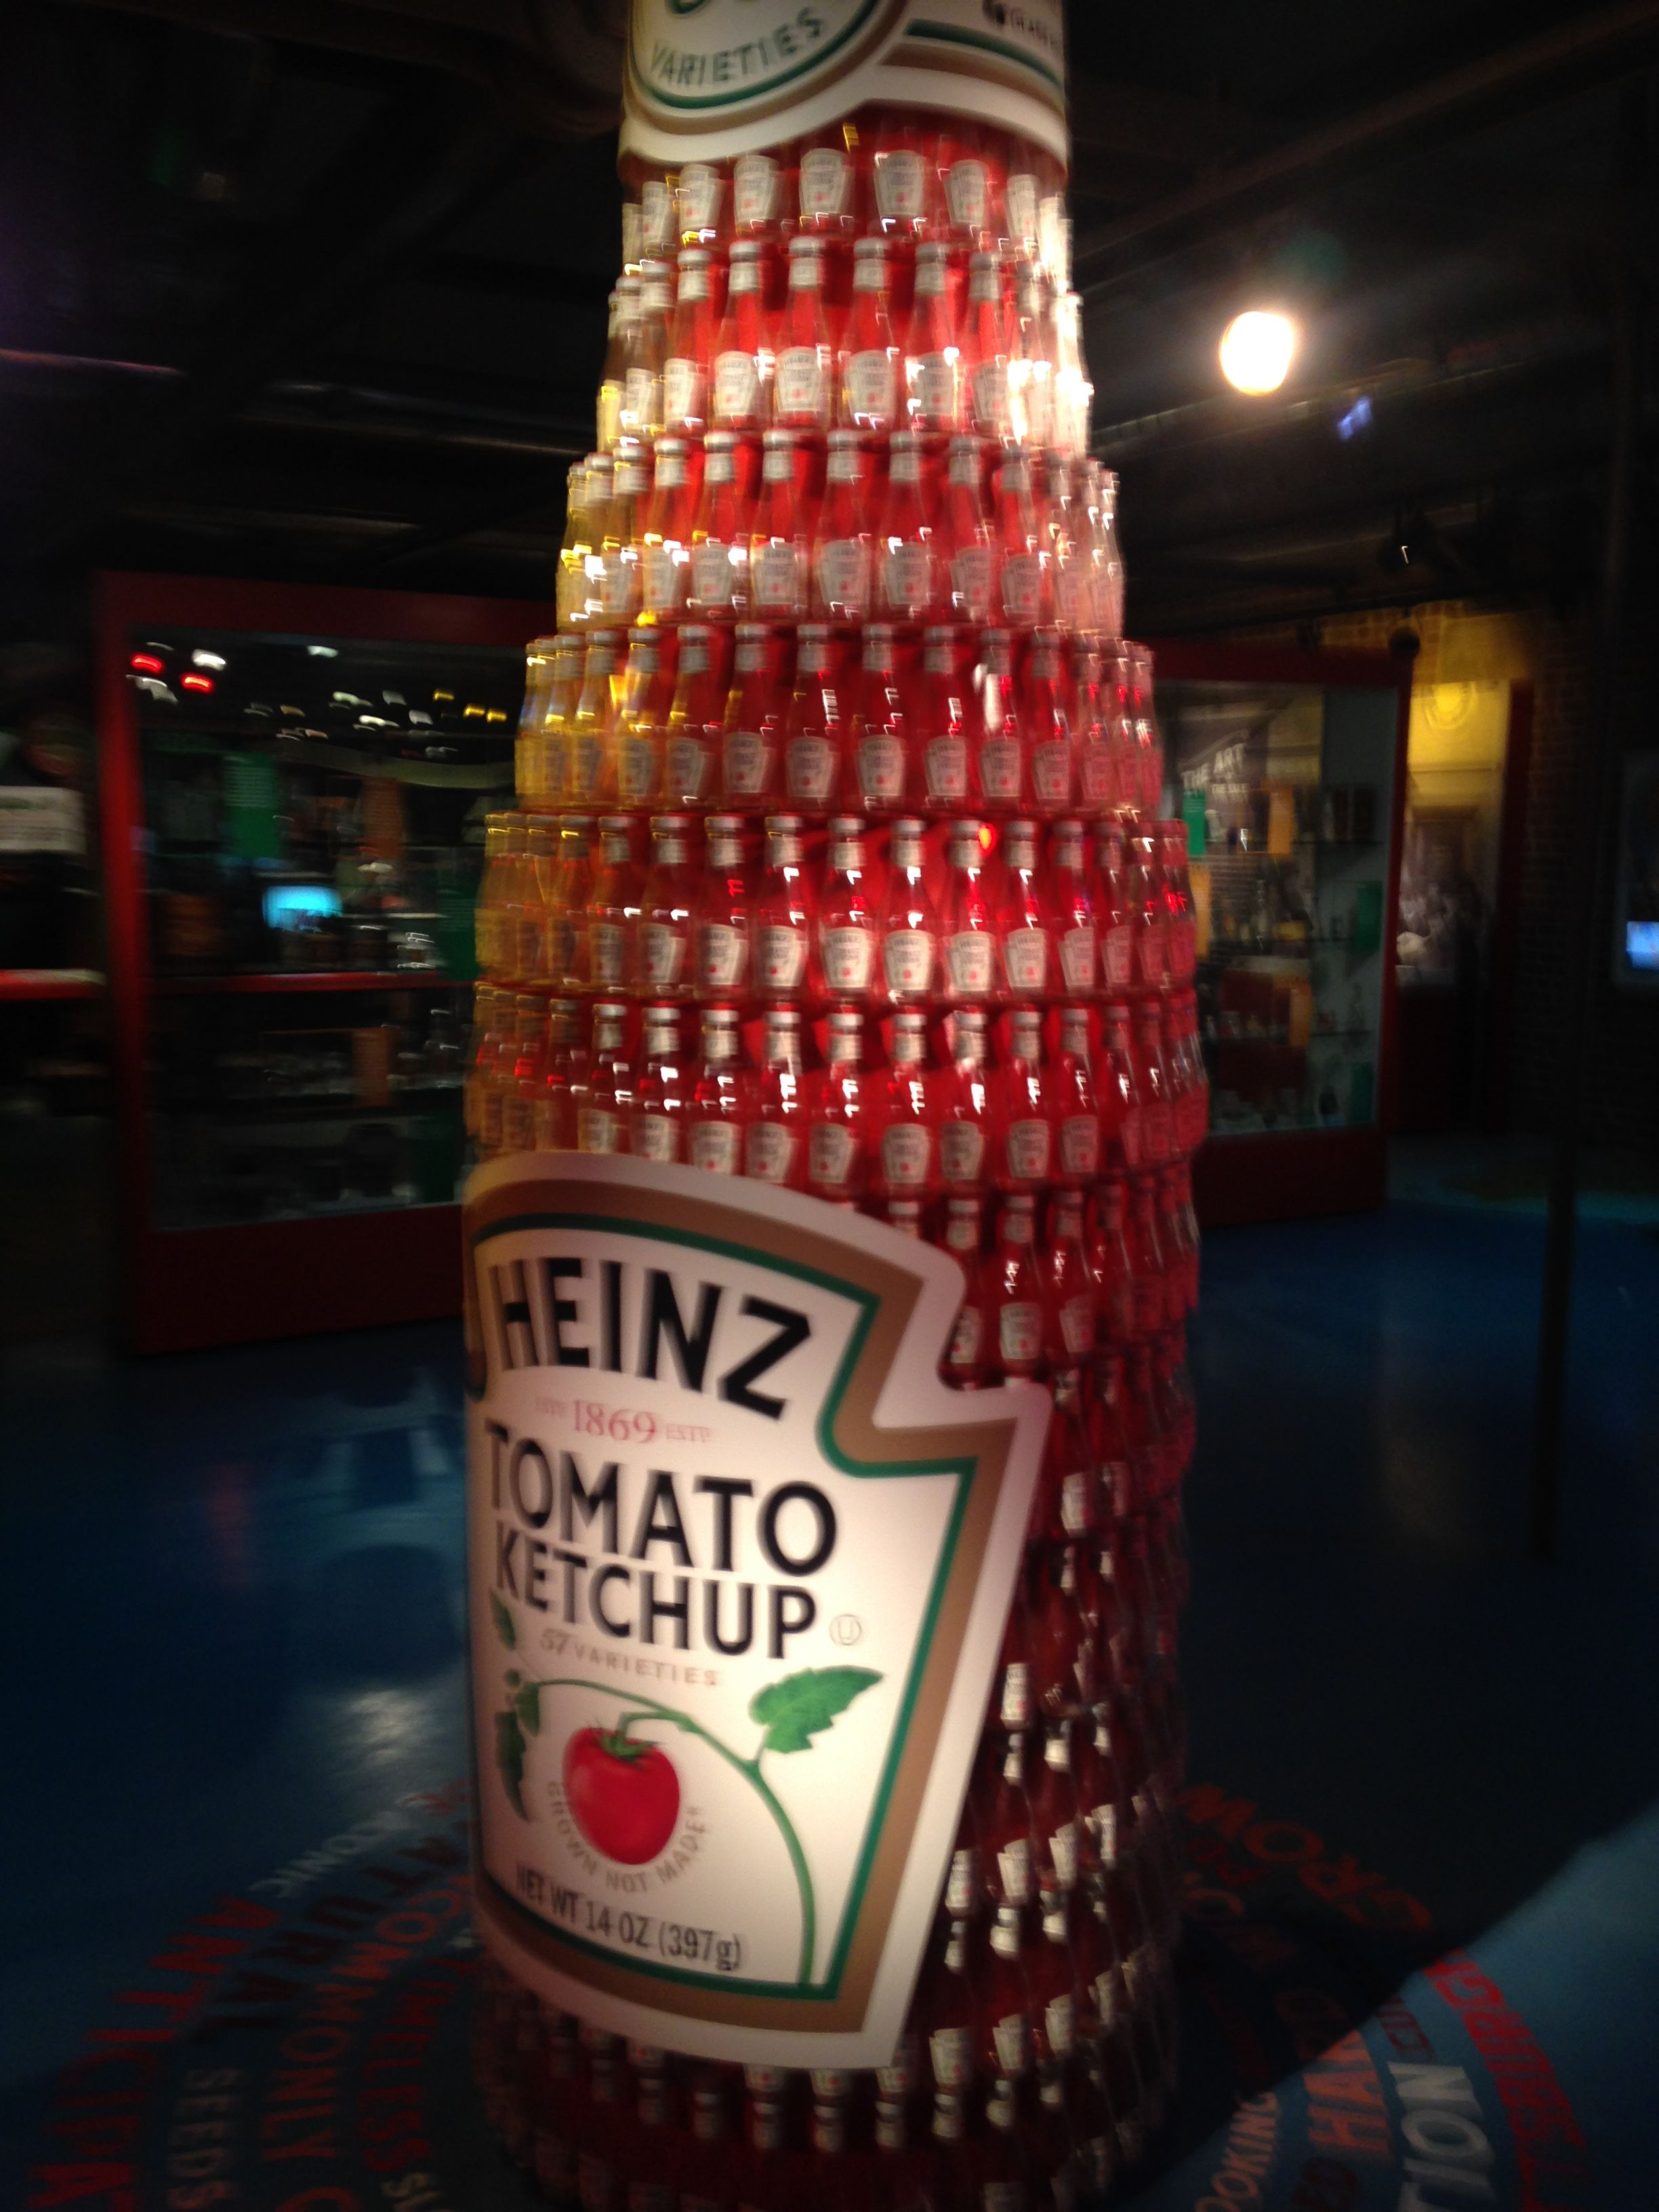 1fe03e566 Giant Heinz Ketchup bottle made from Heinz Ketchup bottles - Heinz History  Center - Pittsburgh, PA. - July 2018